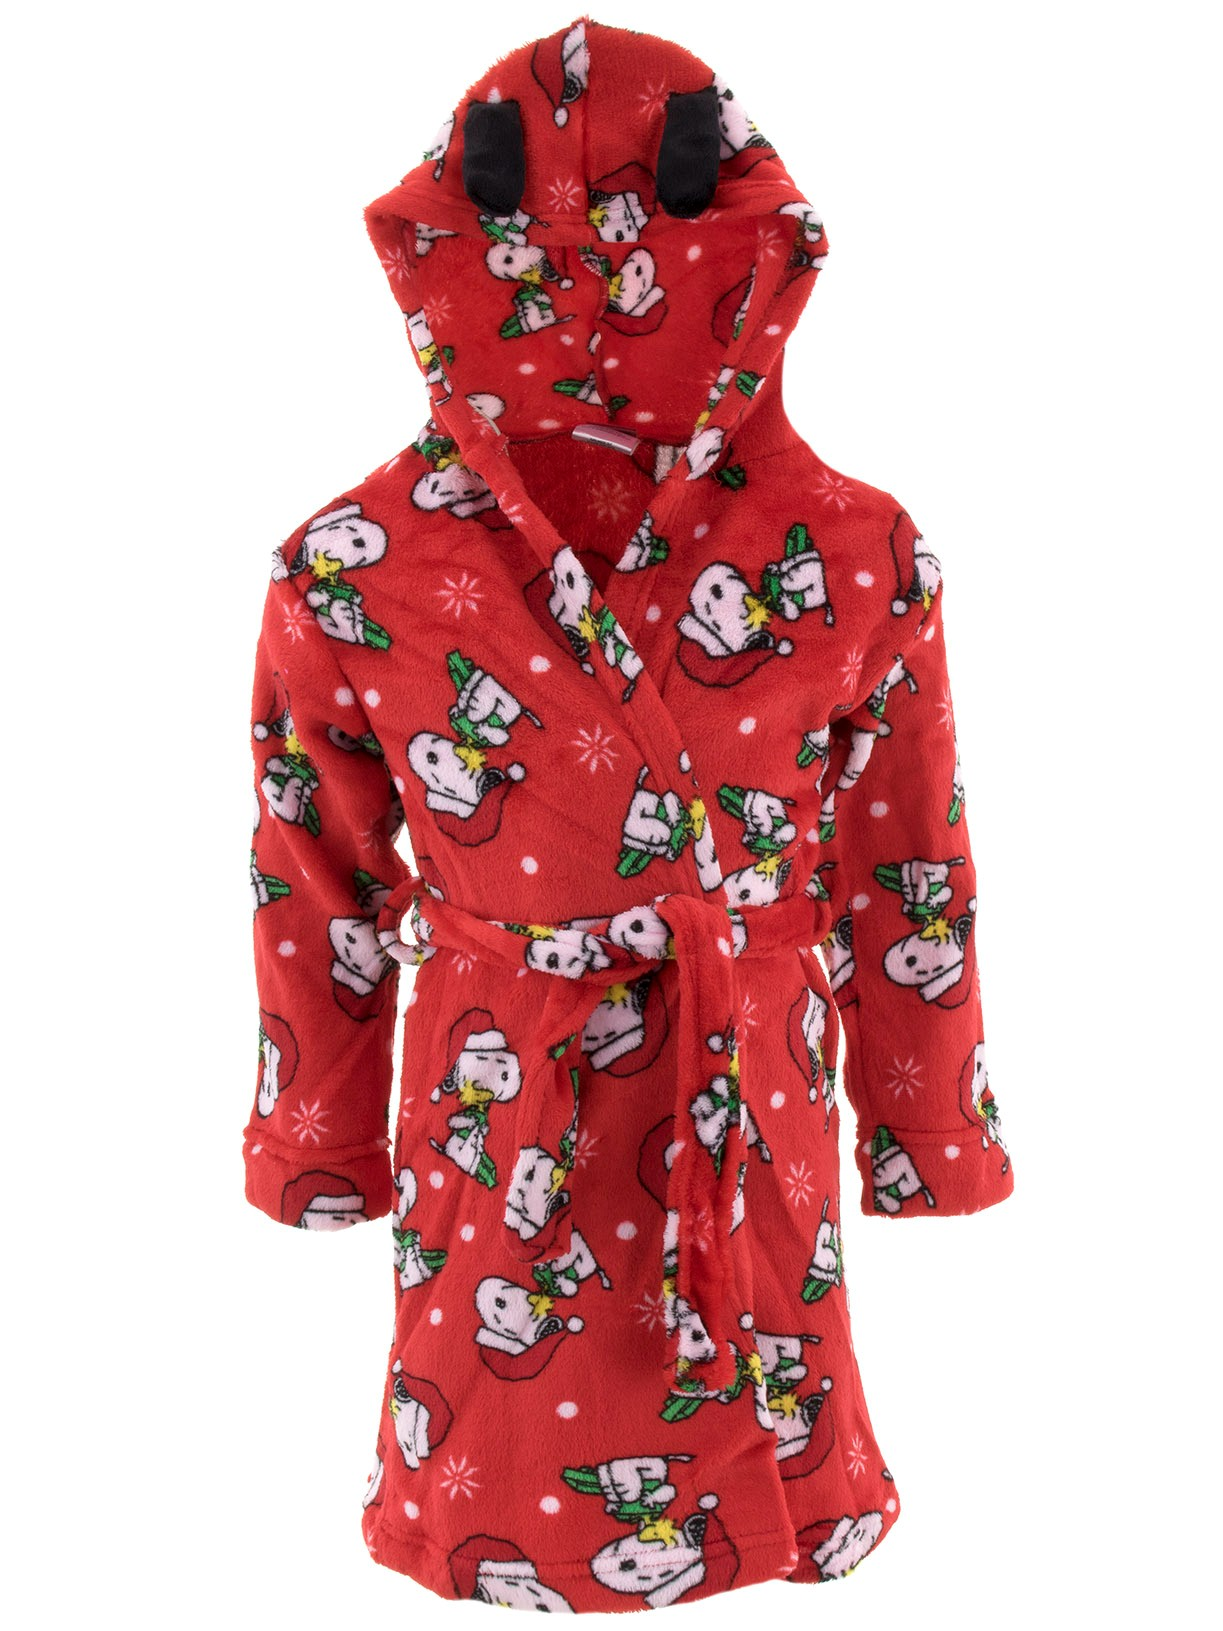 Peanuts Snoopy Christmas Holiday Plush Hooded Robe